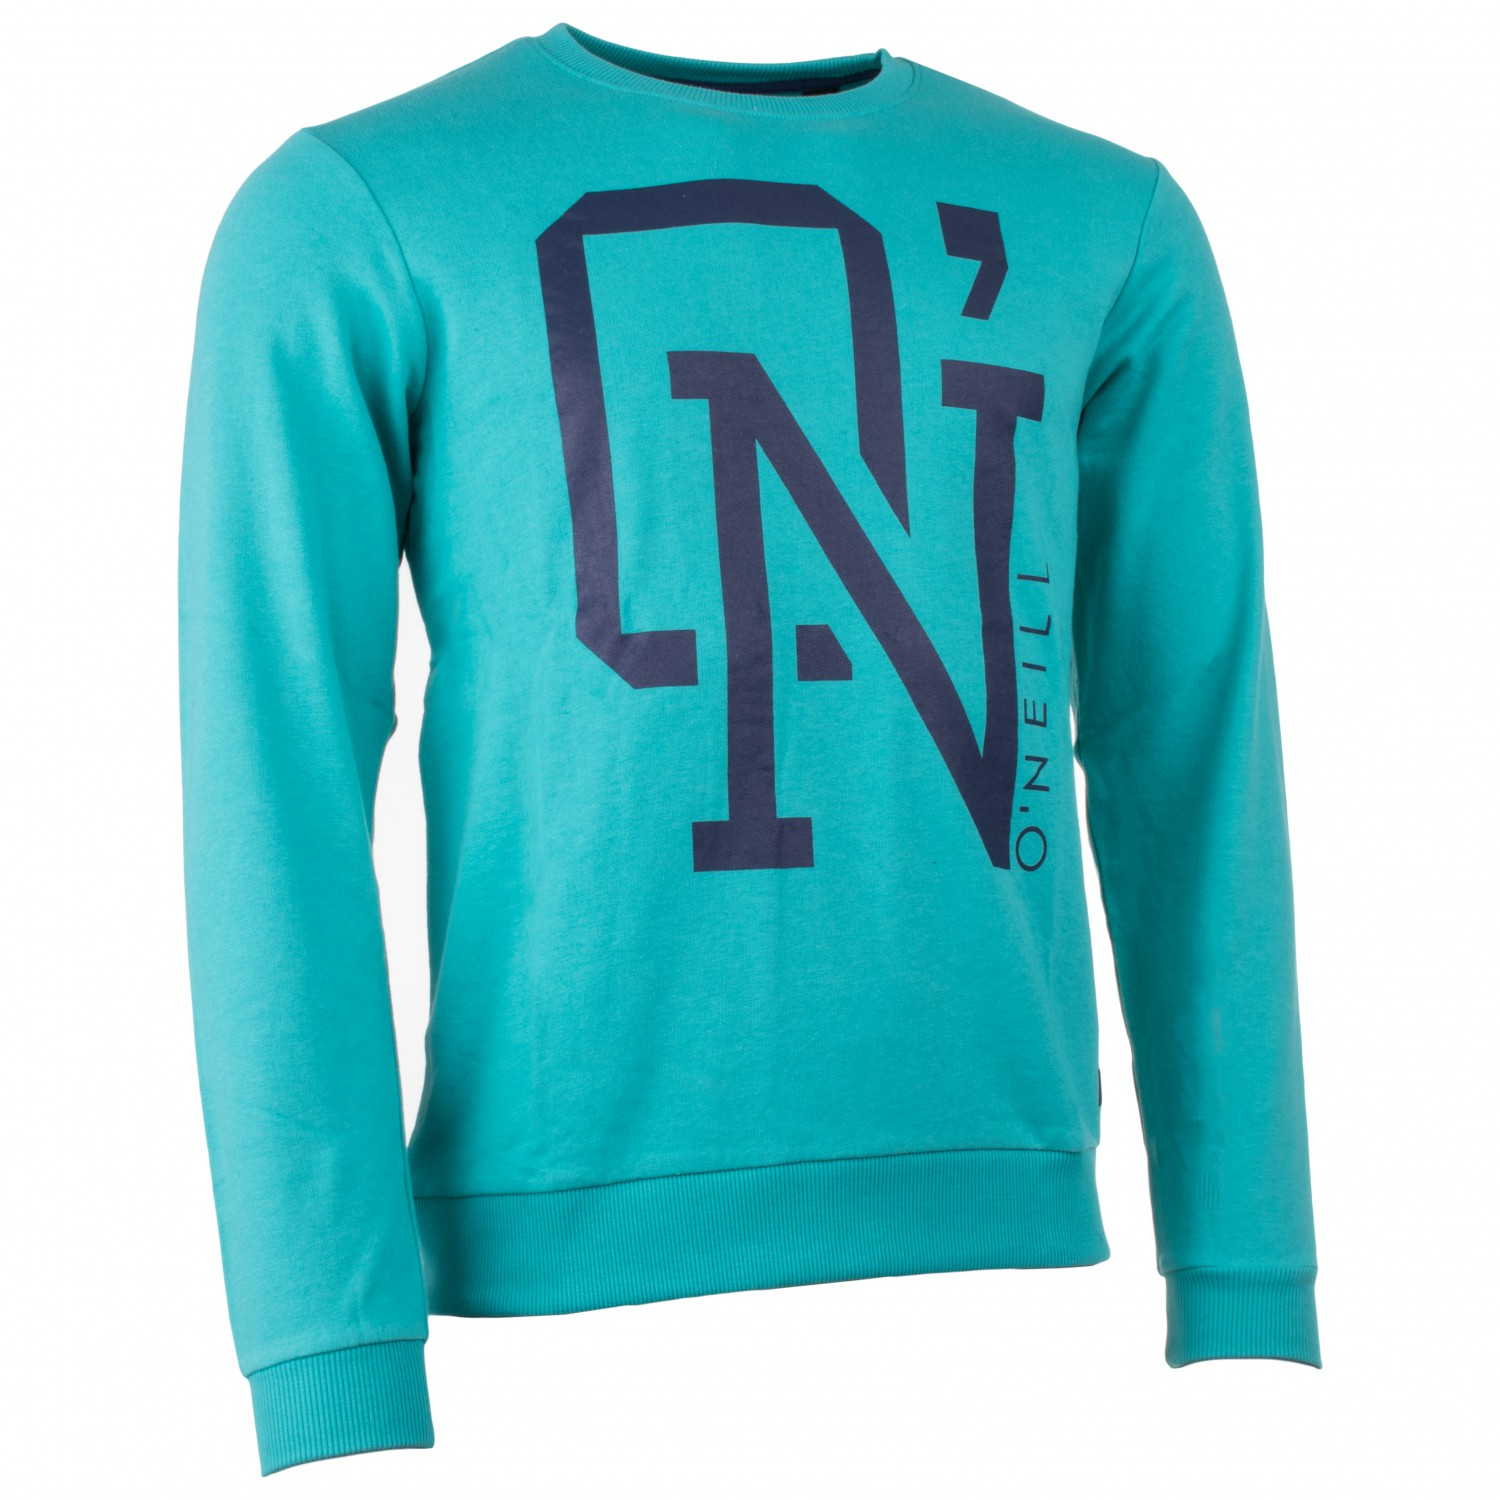 competitive price 6653c 67193 O'Neill - O'N Crew Sweatshirt - Pullover - Veridian Green | S